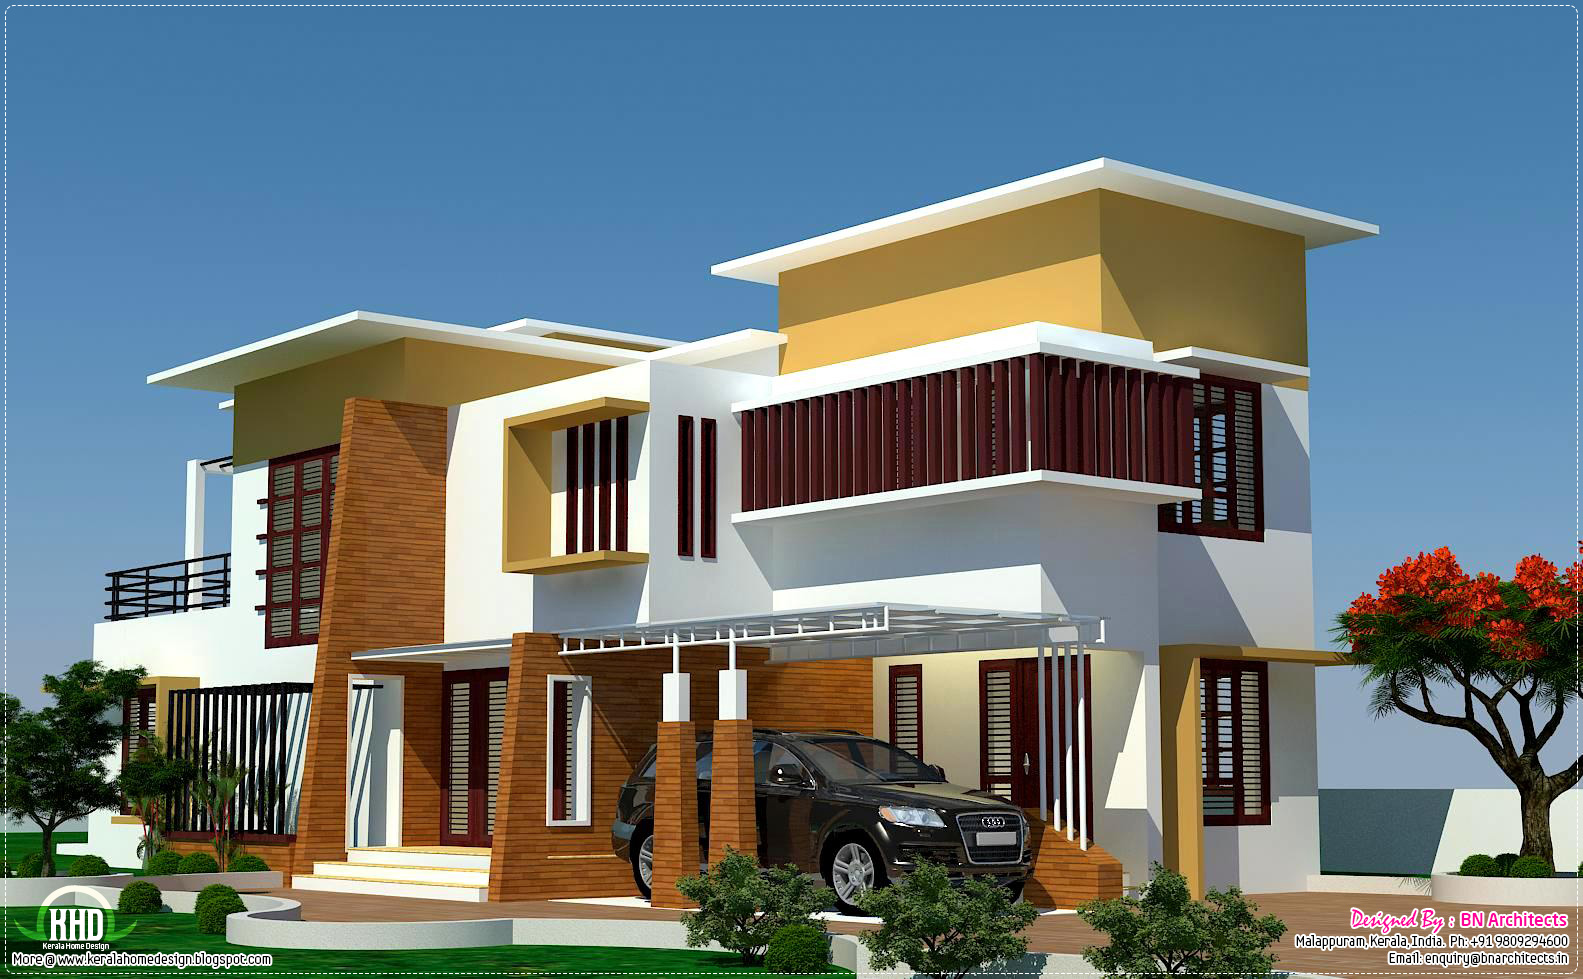 4 bedroom modern villa design kerala home design and for Kerala modern house designs